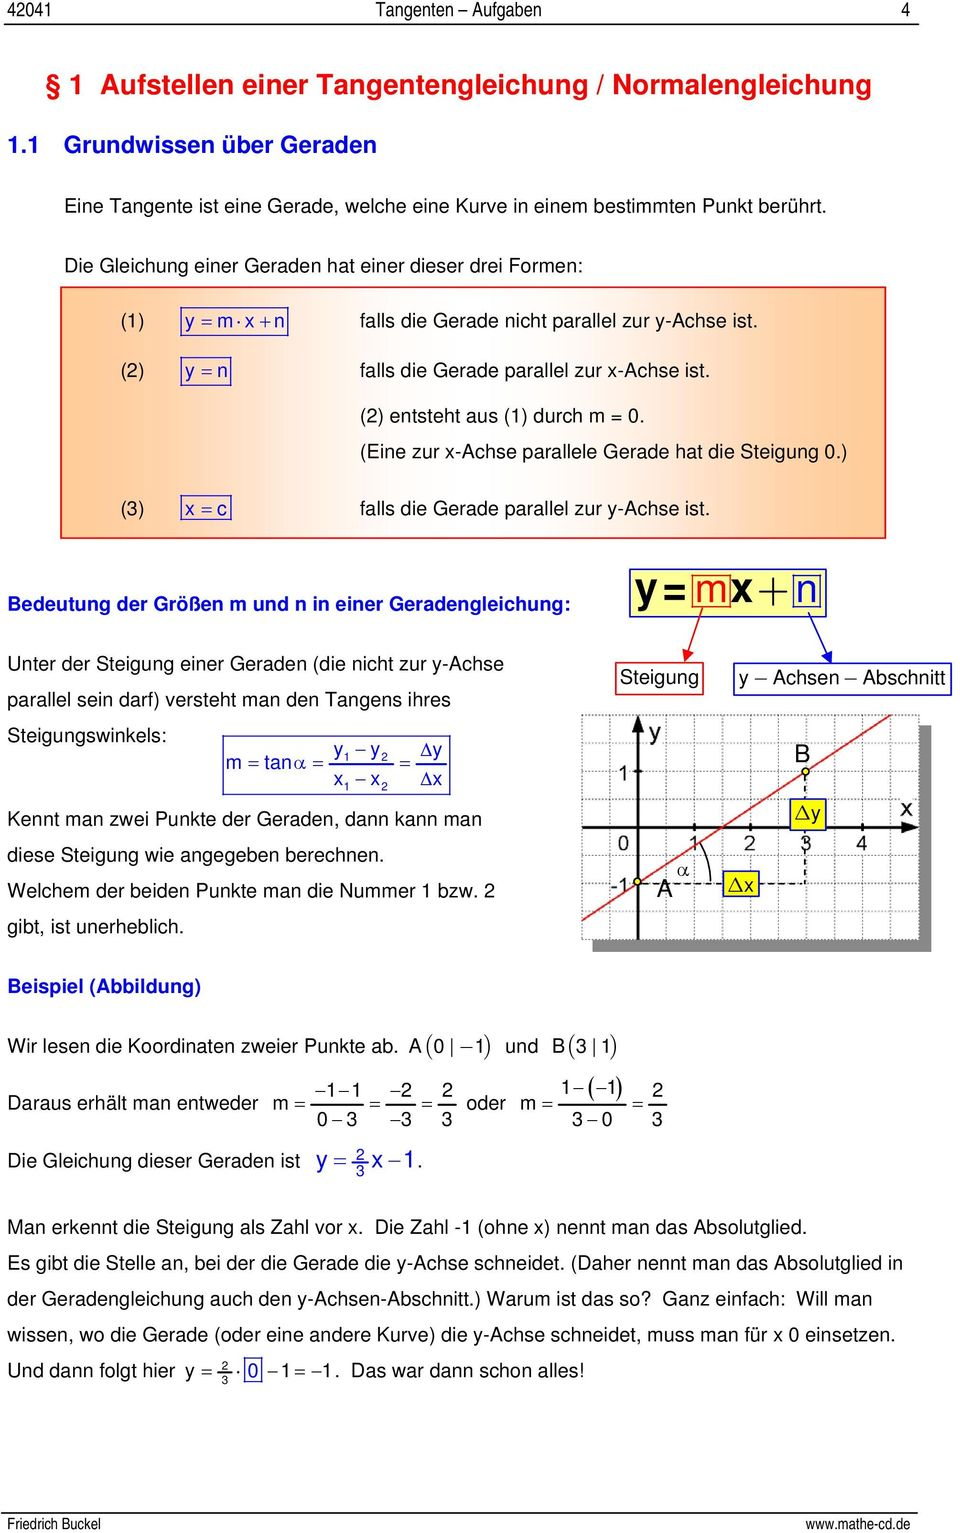 Old Fashioned Algebra 1 Arbeitsblatt Antworten Ideas - Kindergarten ...